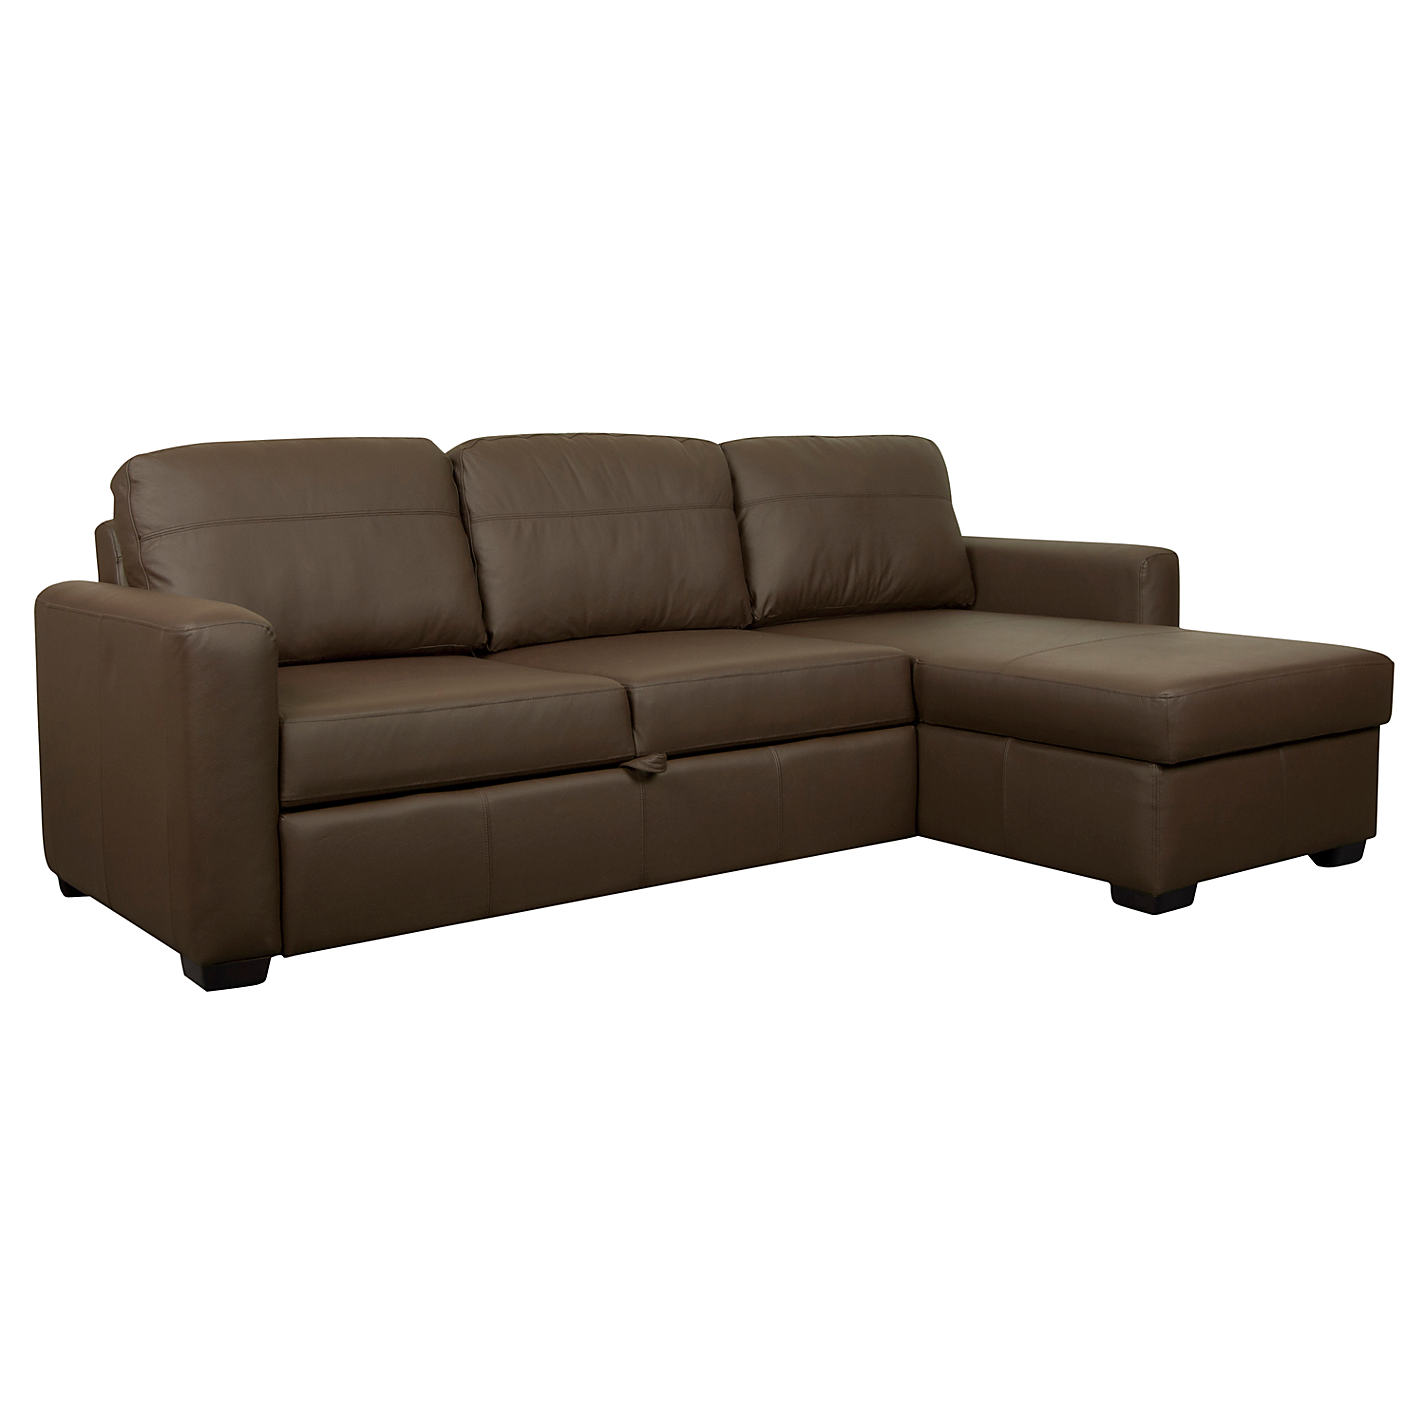 ... Buy John Lewis Sacha Large Leather Sofa Bed With Foam Mattress, Madras  Chocolate Online At ...